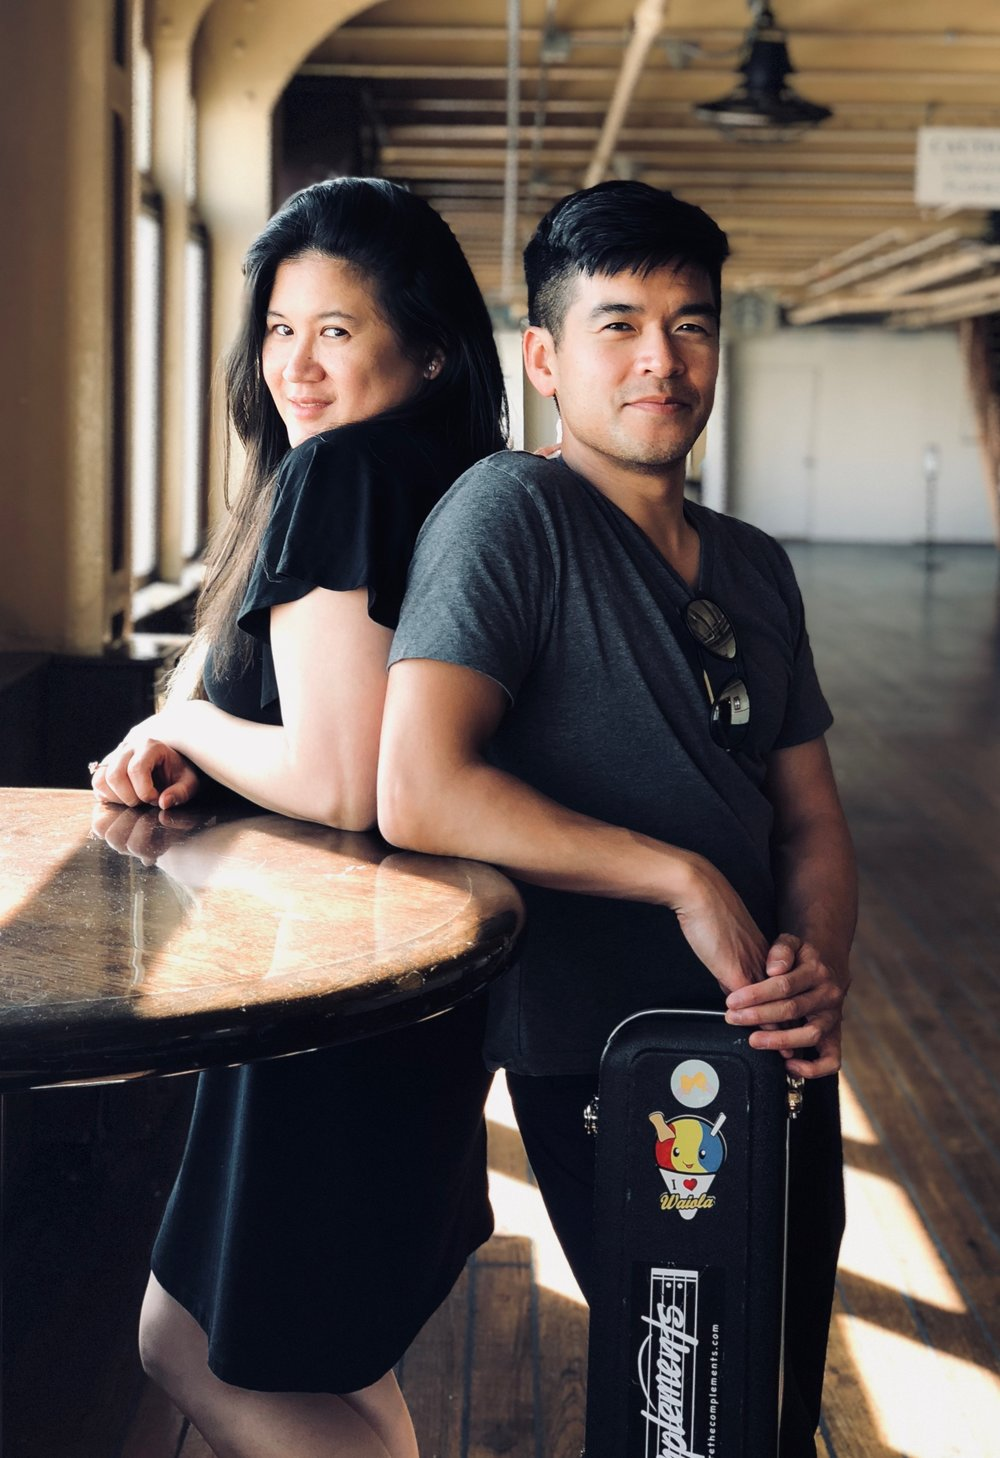 The Complements - Often recognized for their soulful vocal harmonies and charming performances, The Complements are an acoustic duo that has drawn comparisons to The Civil Wars, Alex & Sierra, and Us The Duo. Comprised of best friends Greg and Alicia, their music has been described as